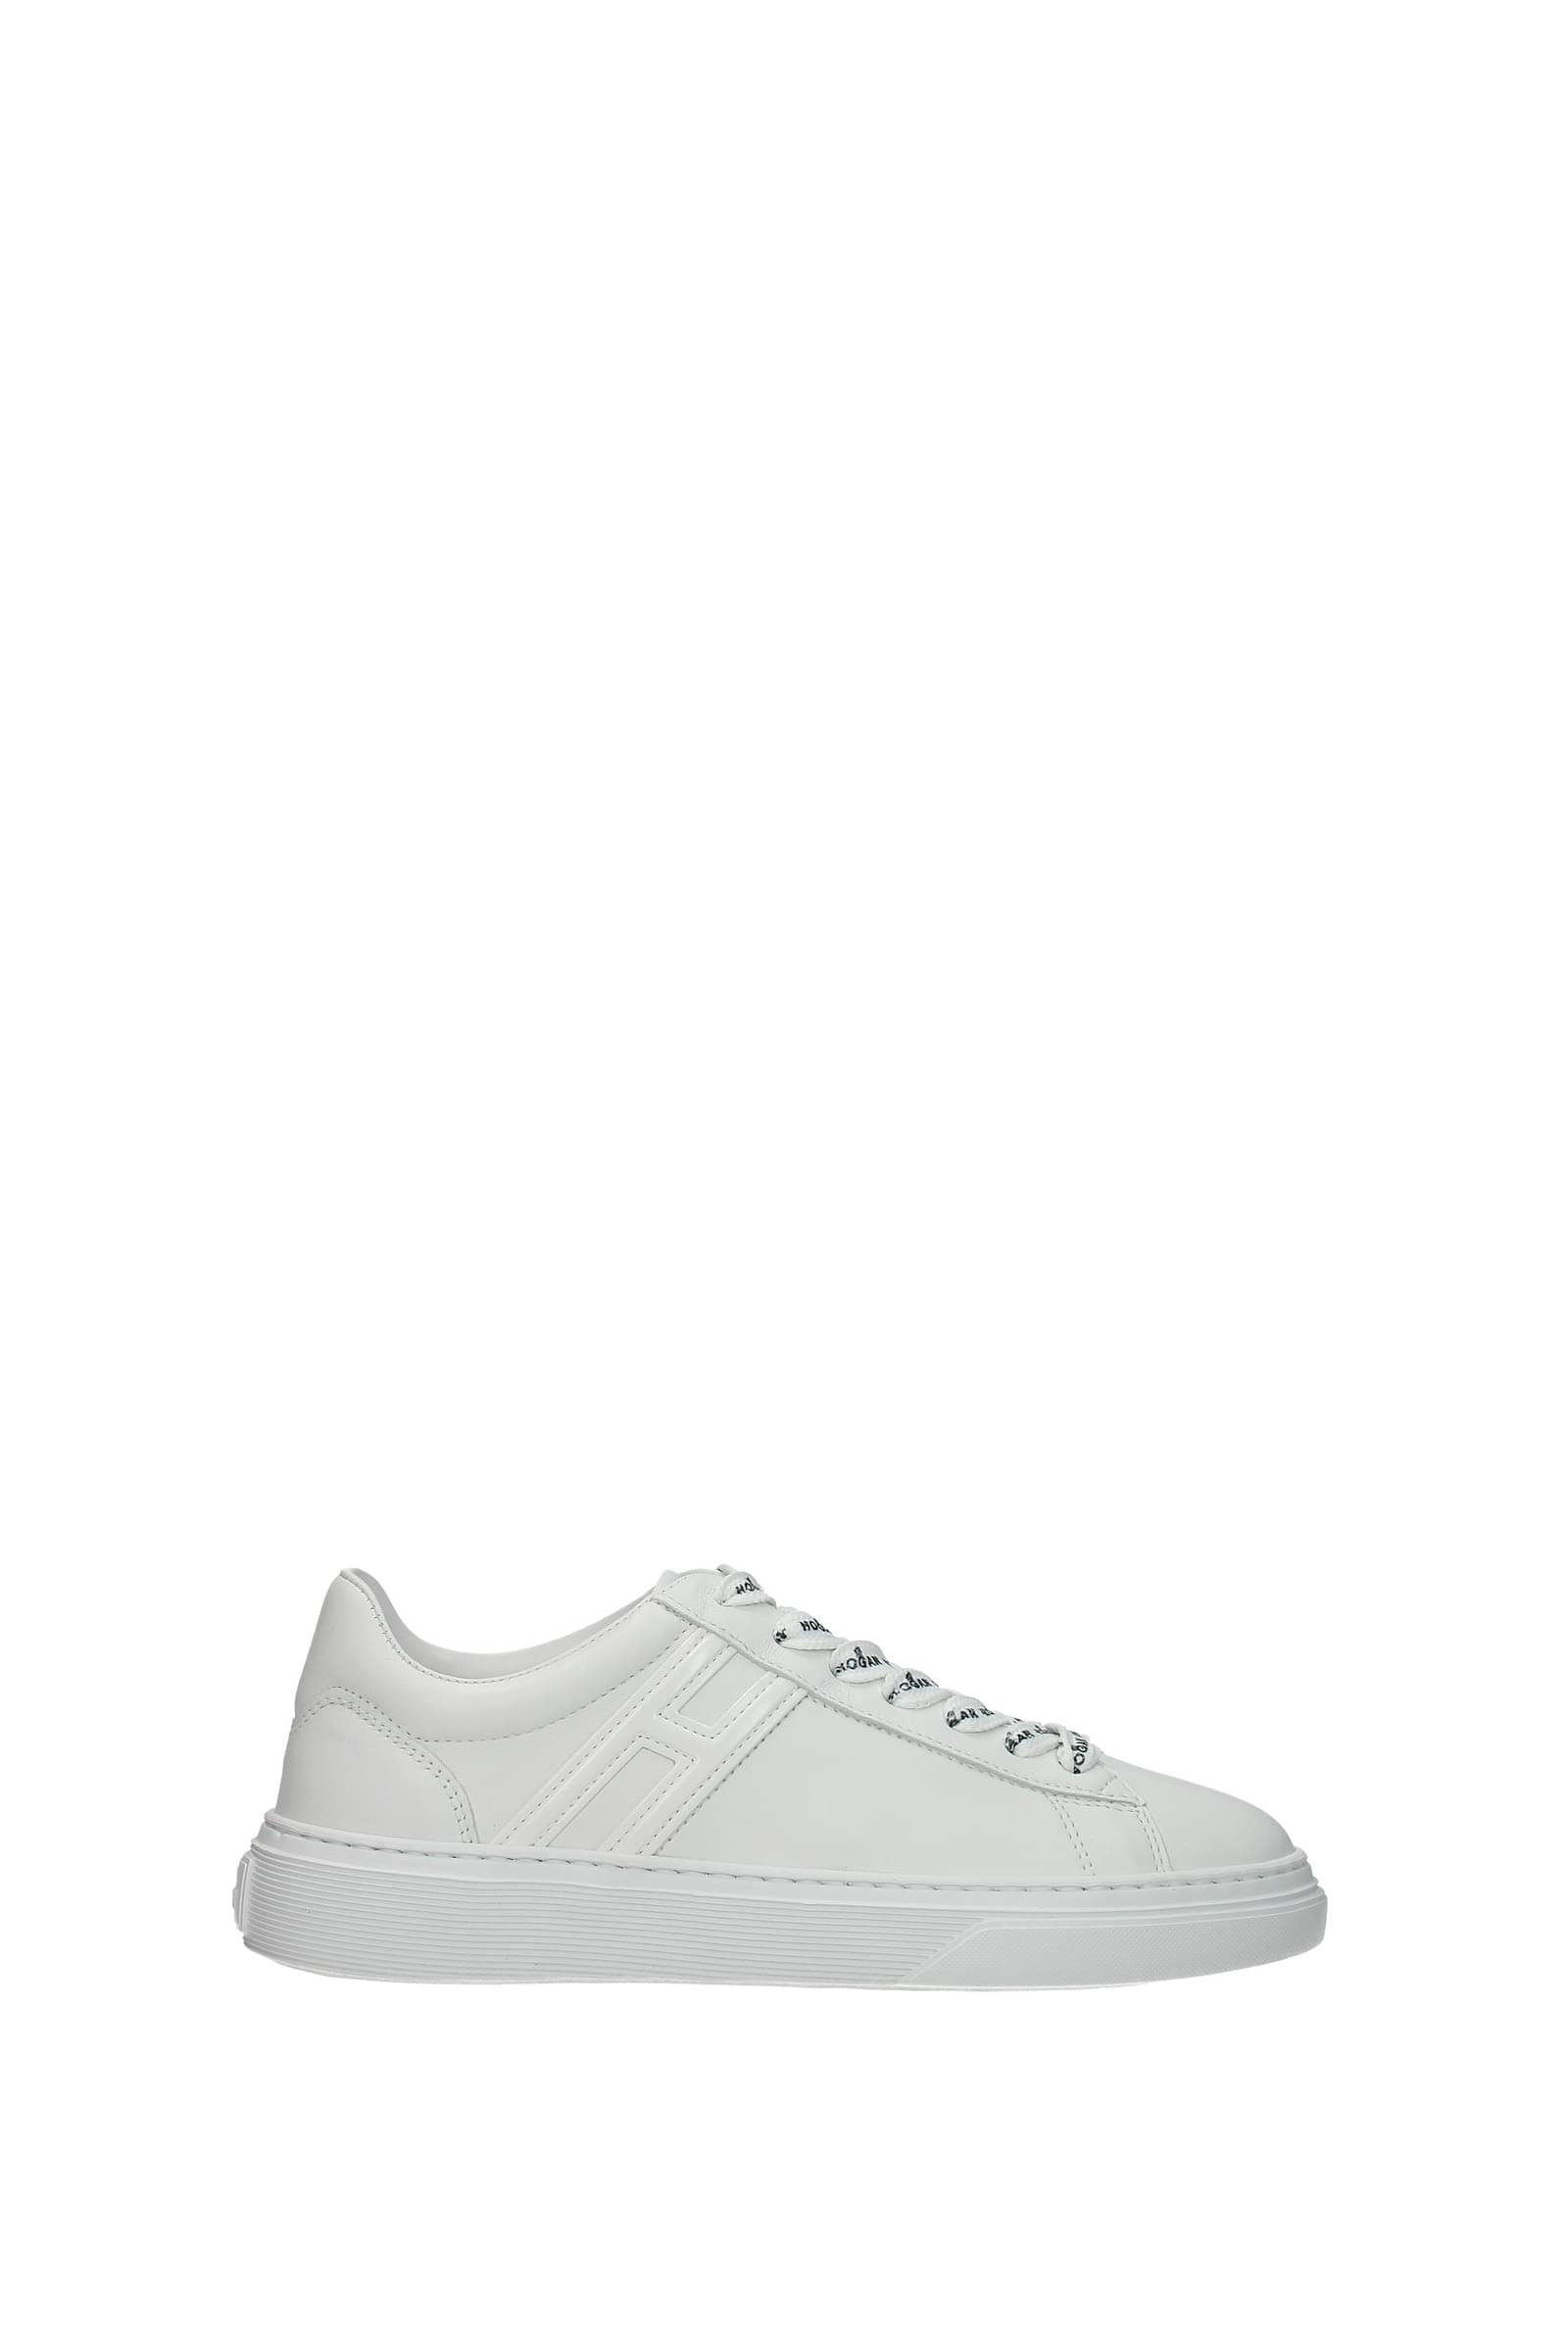 Hogan outlet: sneakers and shoes on sale up to 50%